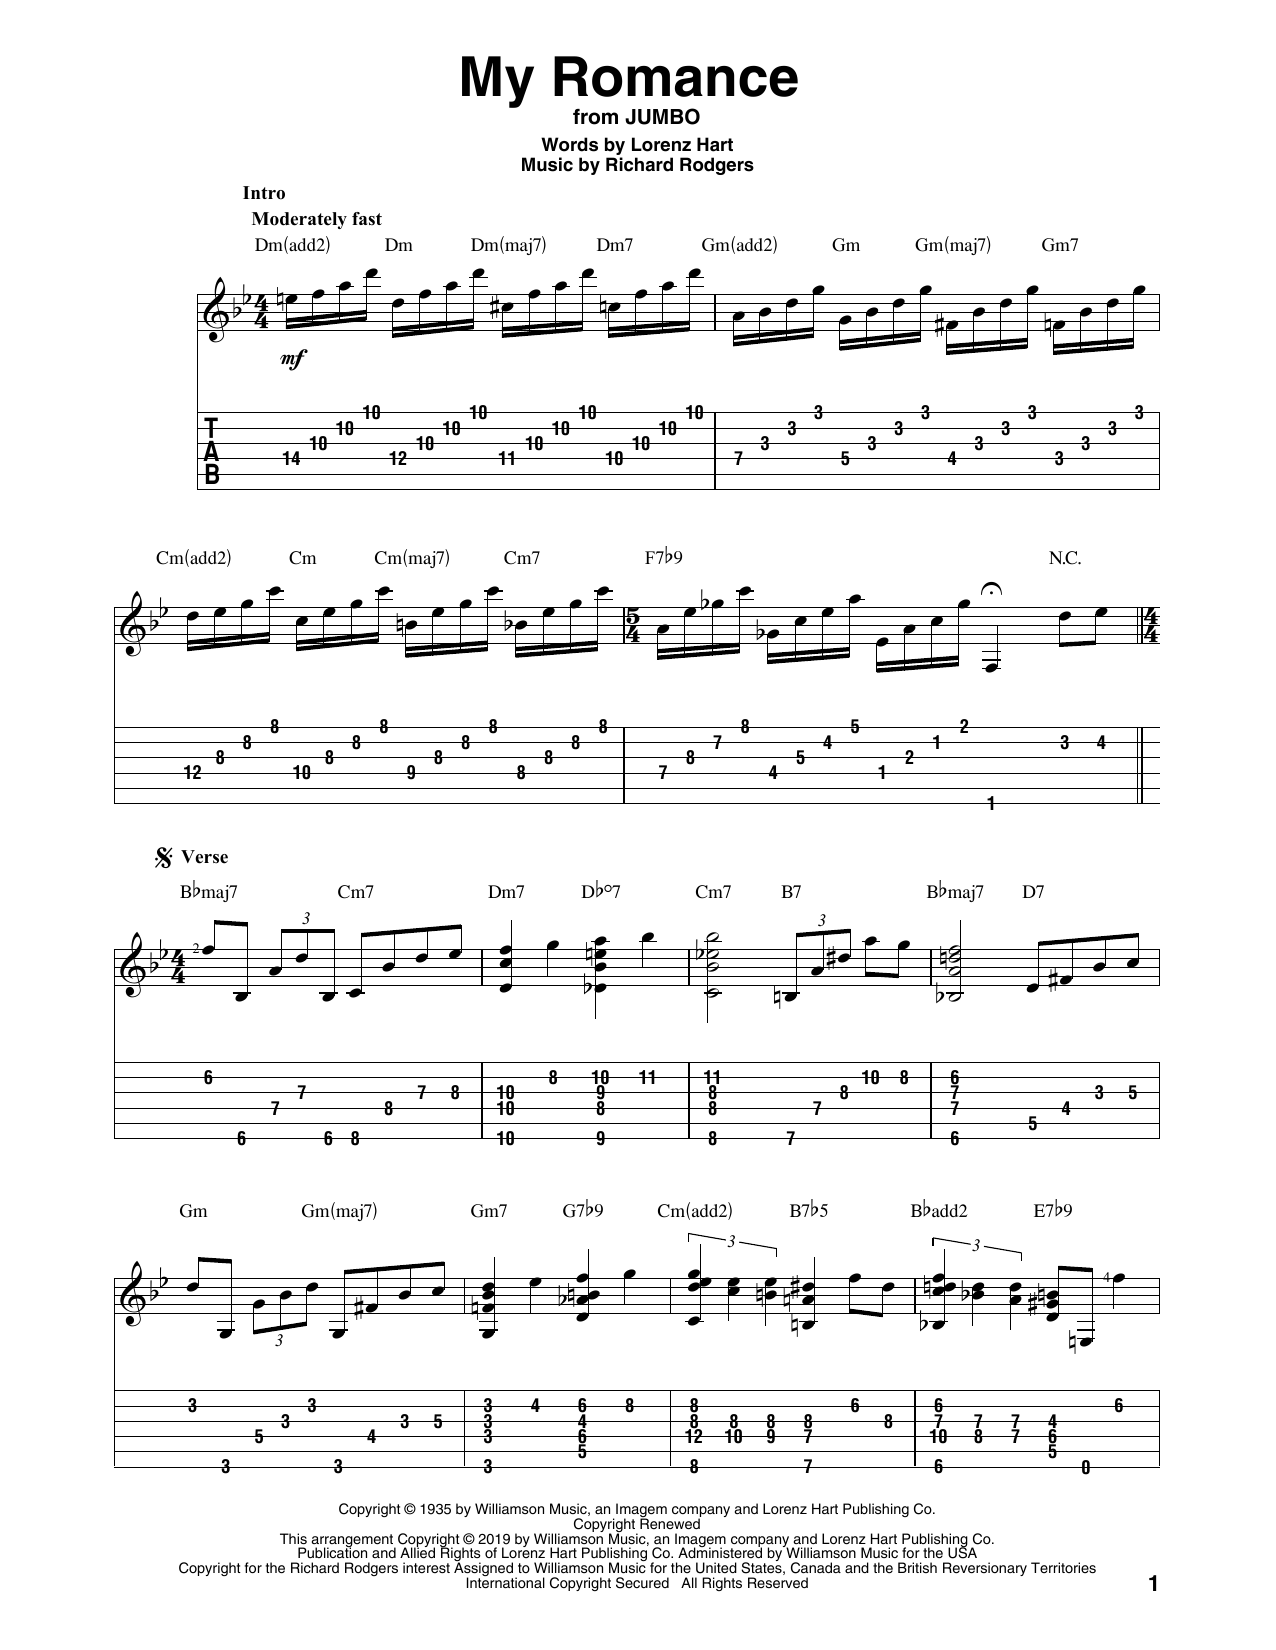 Rodgers & Hart 'My Romance' Sheet Music Notes, Chords | Download Printable  Solo Guitar Tab - SKU: 414577